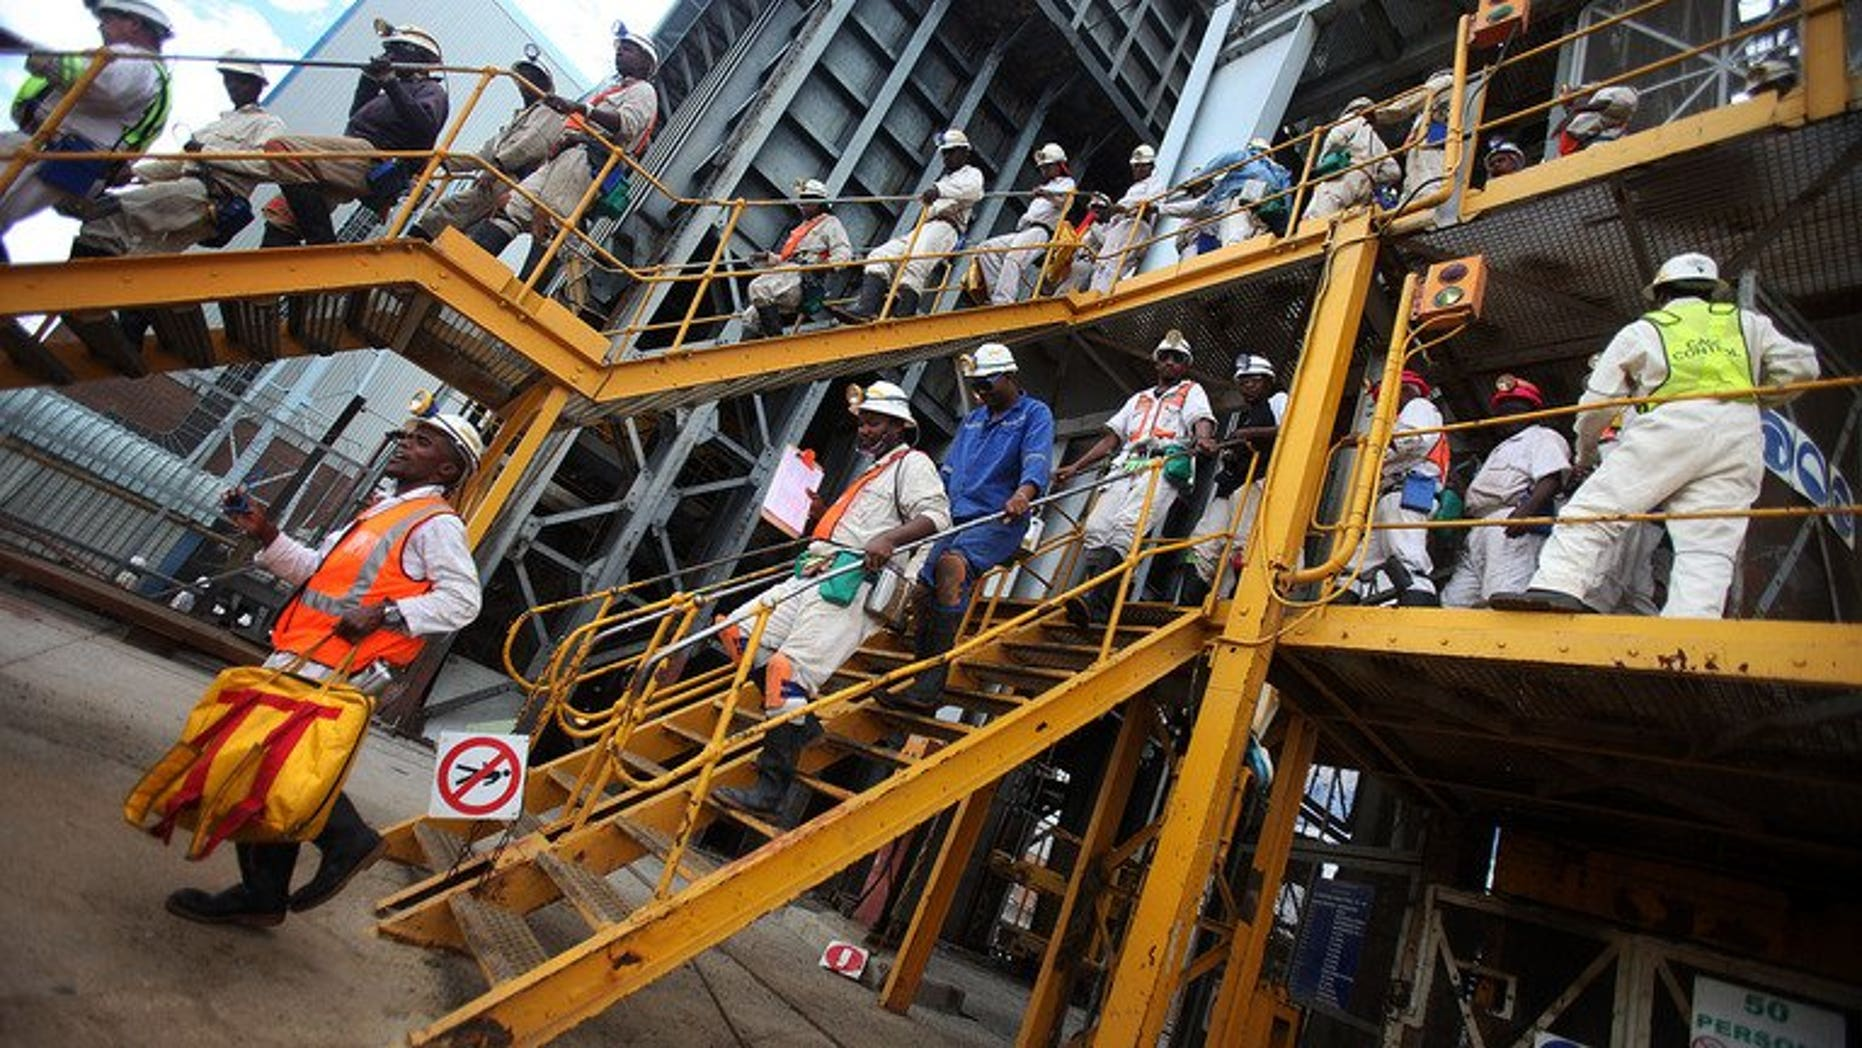 Mine workers leave on January 19, 2011 the 14 Shaft of the Impala Platinum mine in Phokeng. Two of South Africa's leading mining companies on Friday named a hardline union as the largest grouping at some facilities, raising hopes for an end to months of labour unrest.